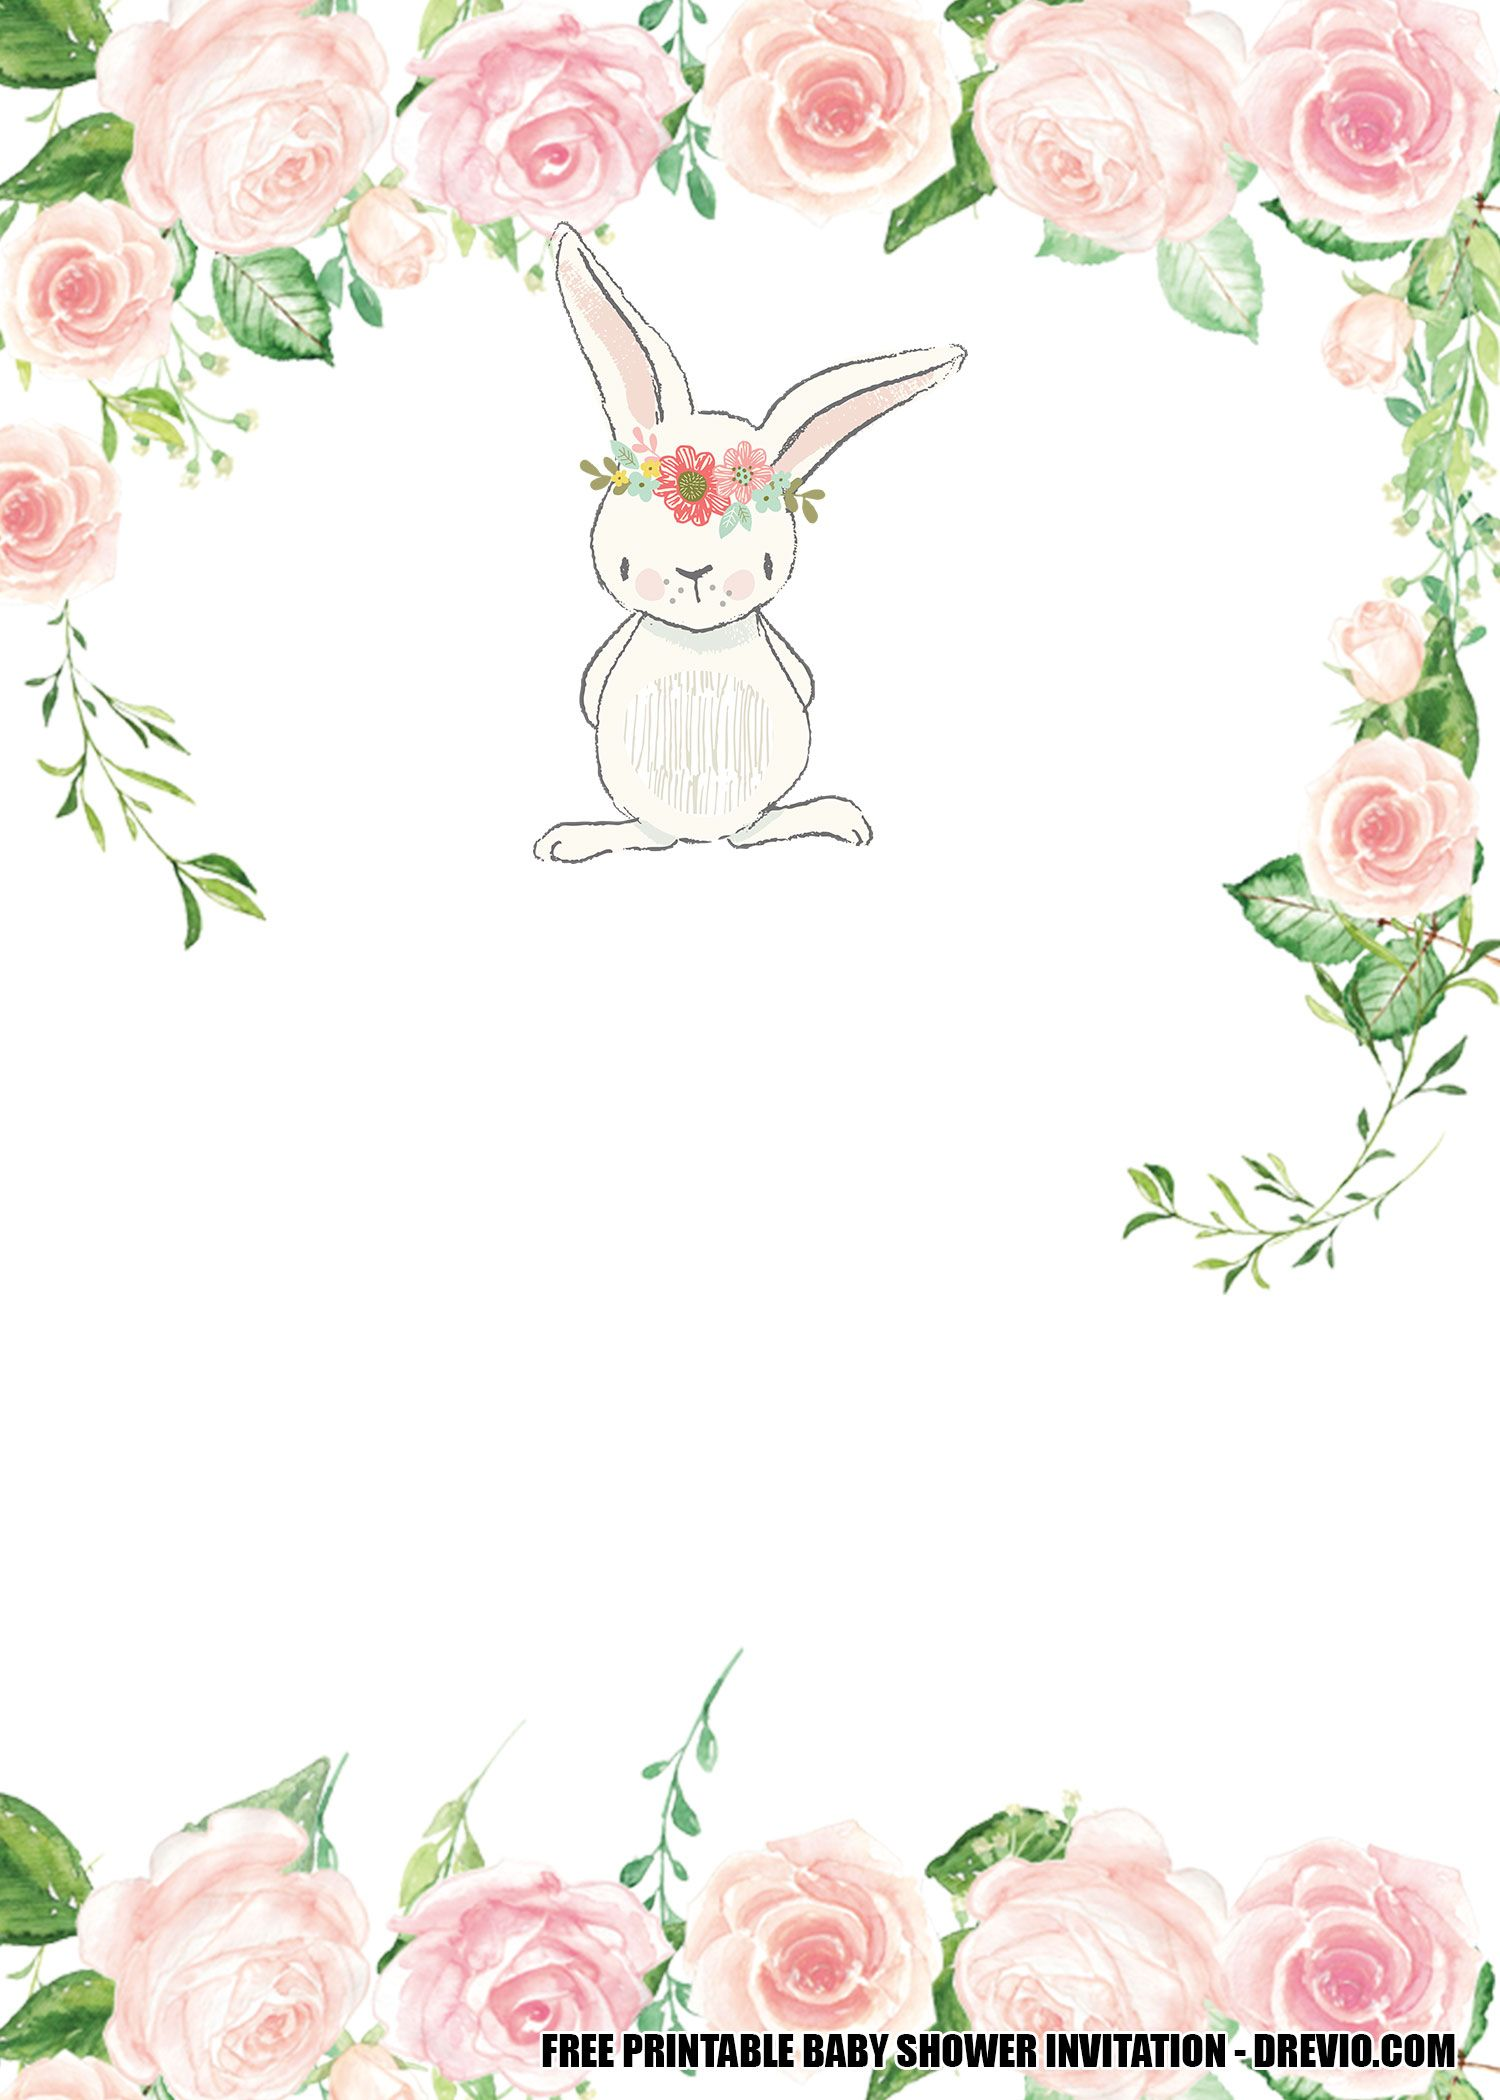 Free Printable Template Some Bunny is One Birthday Invitation in